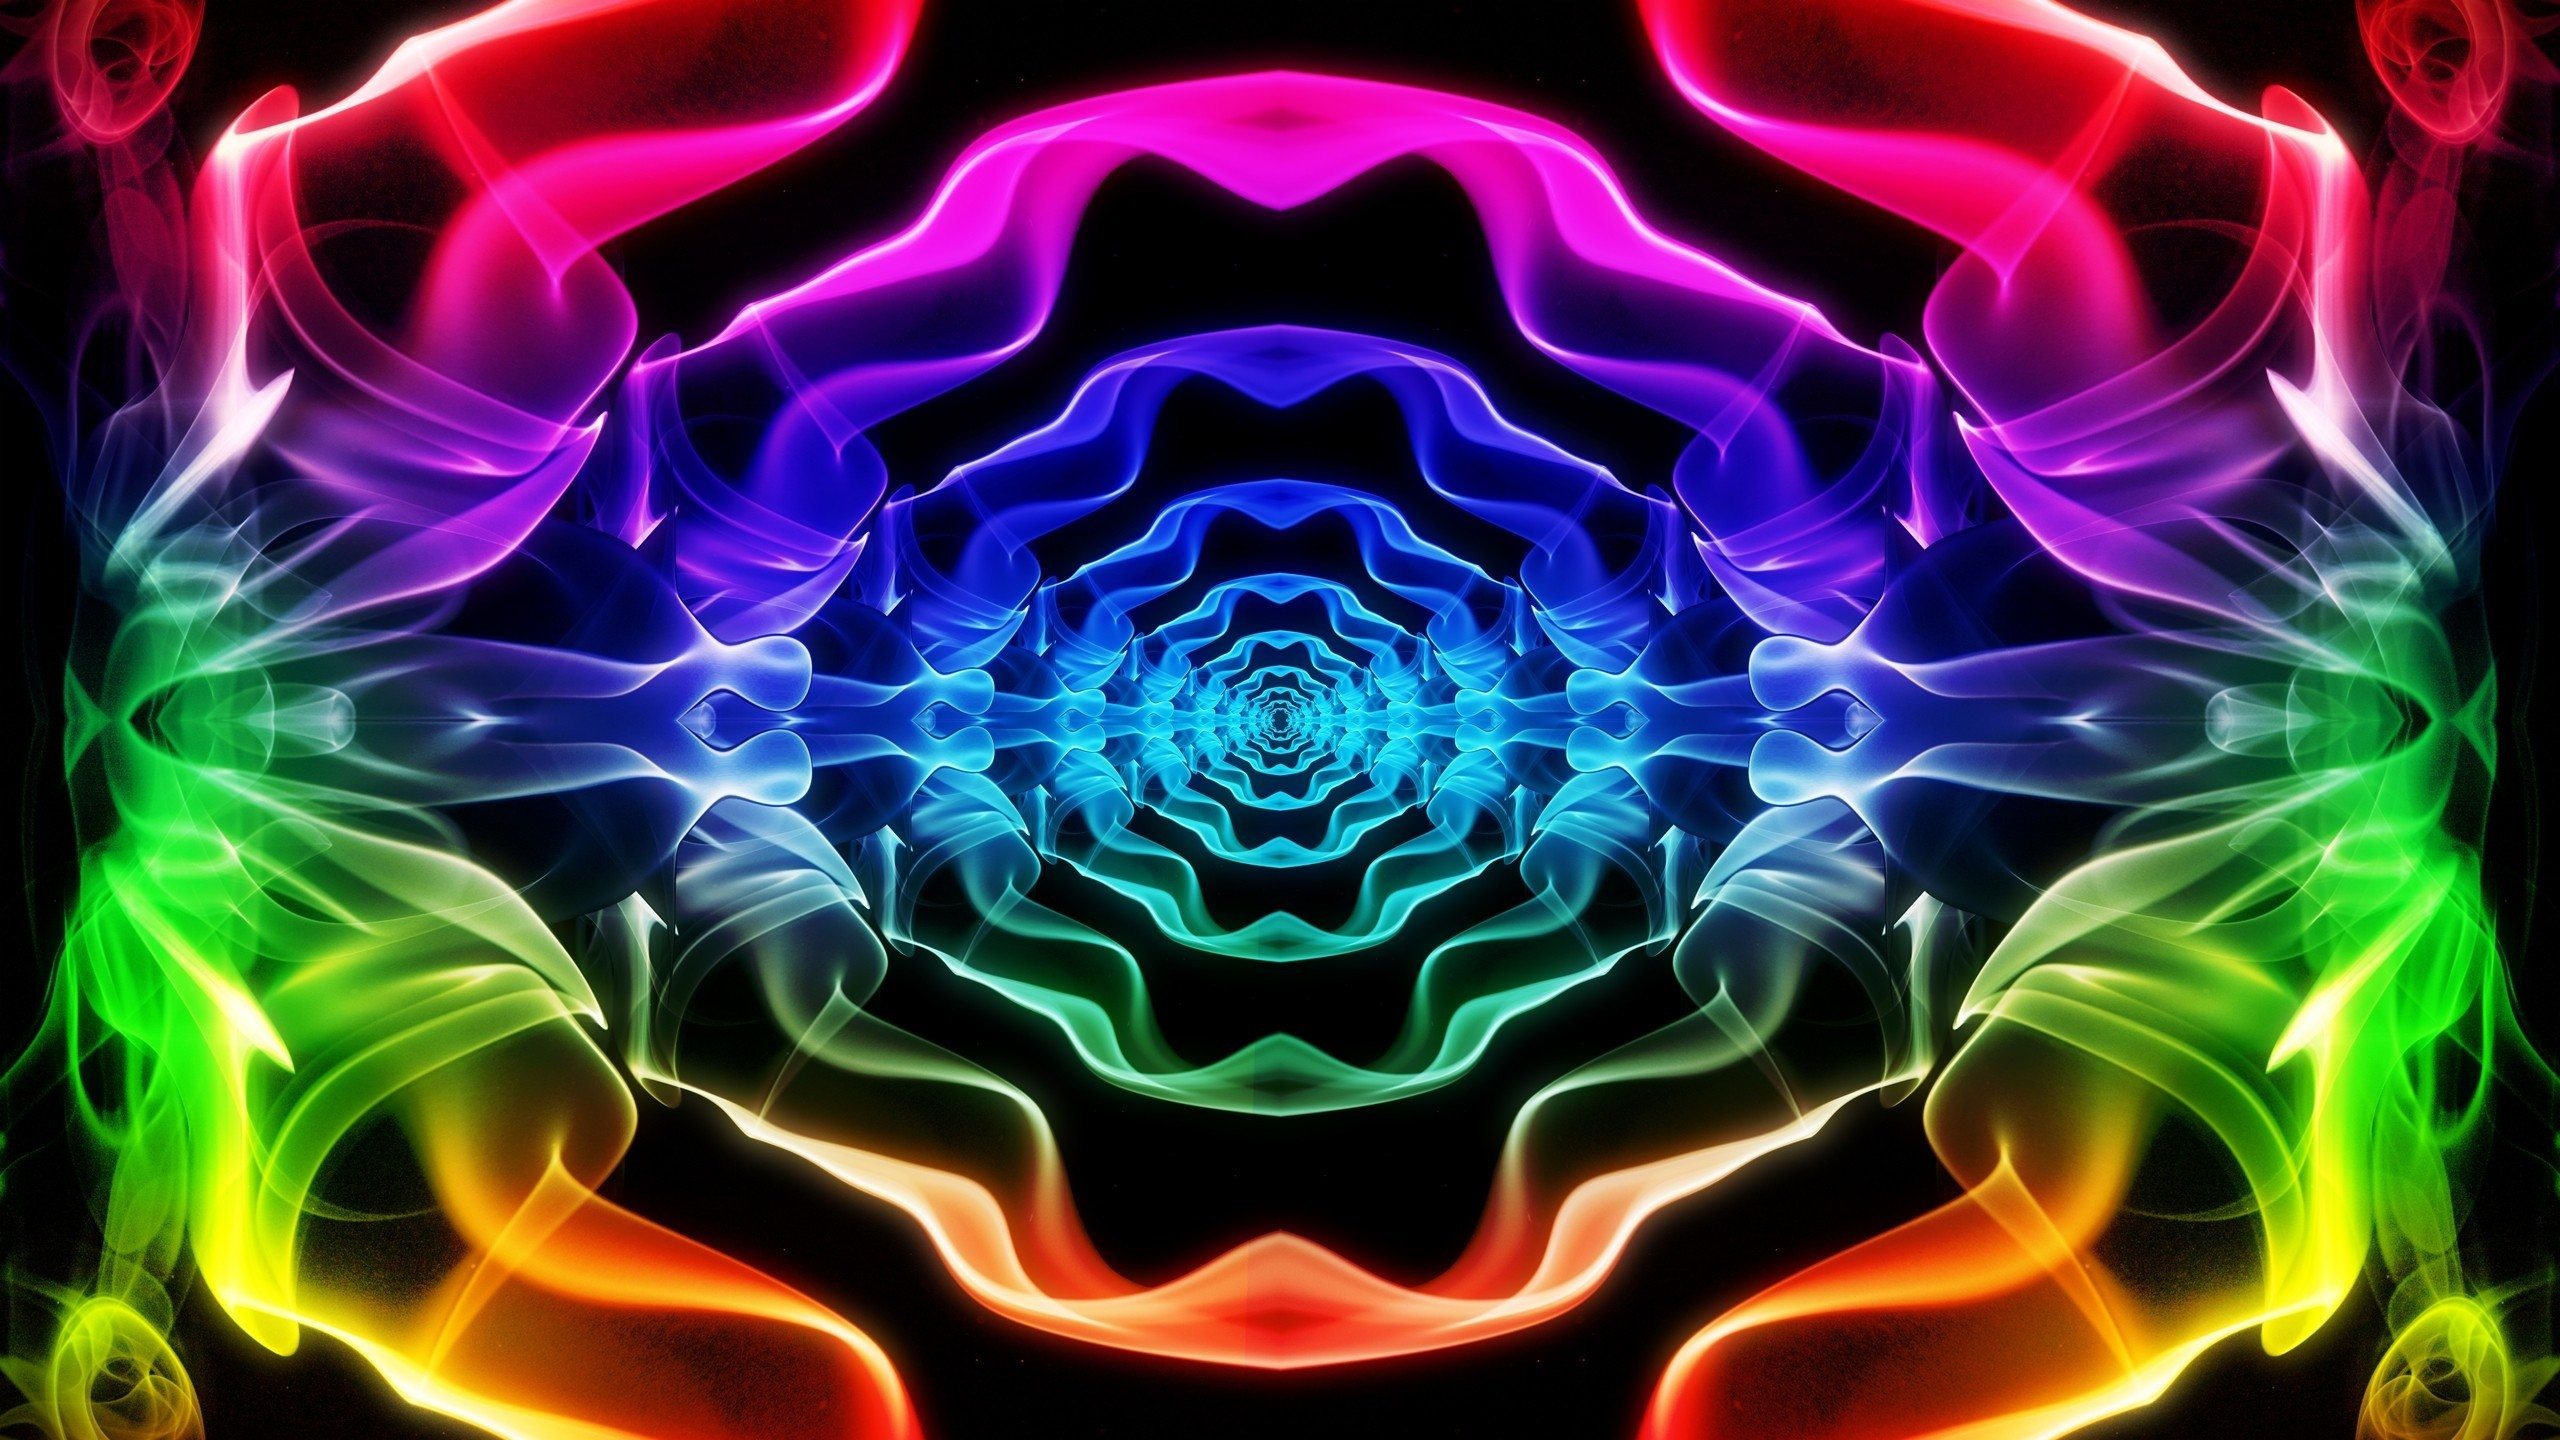 wallpaper.wiki-Spectrum-twitter-background-color-psychedelic-abstract-